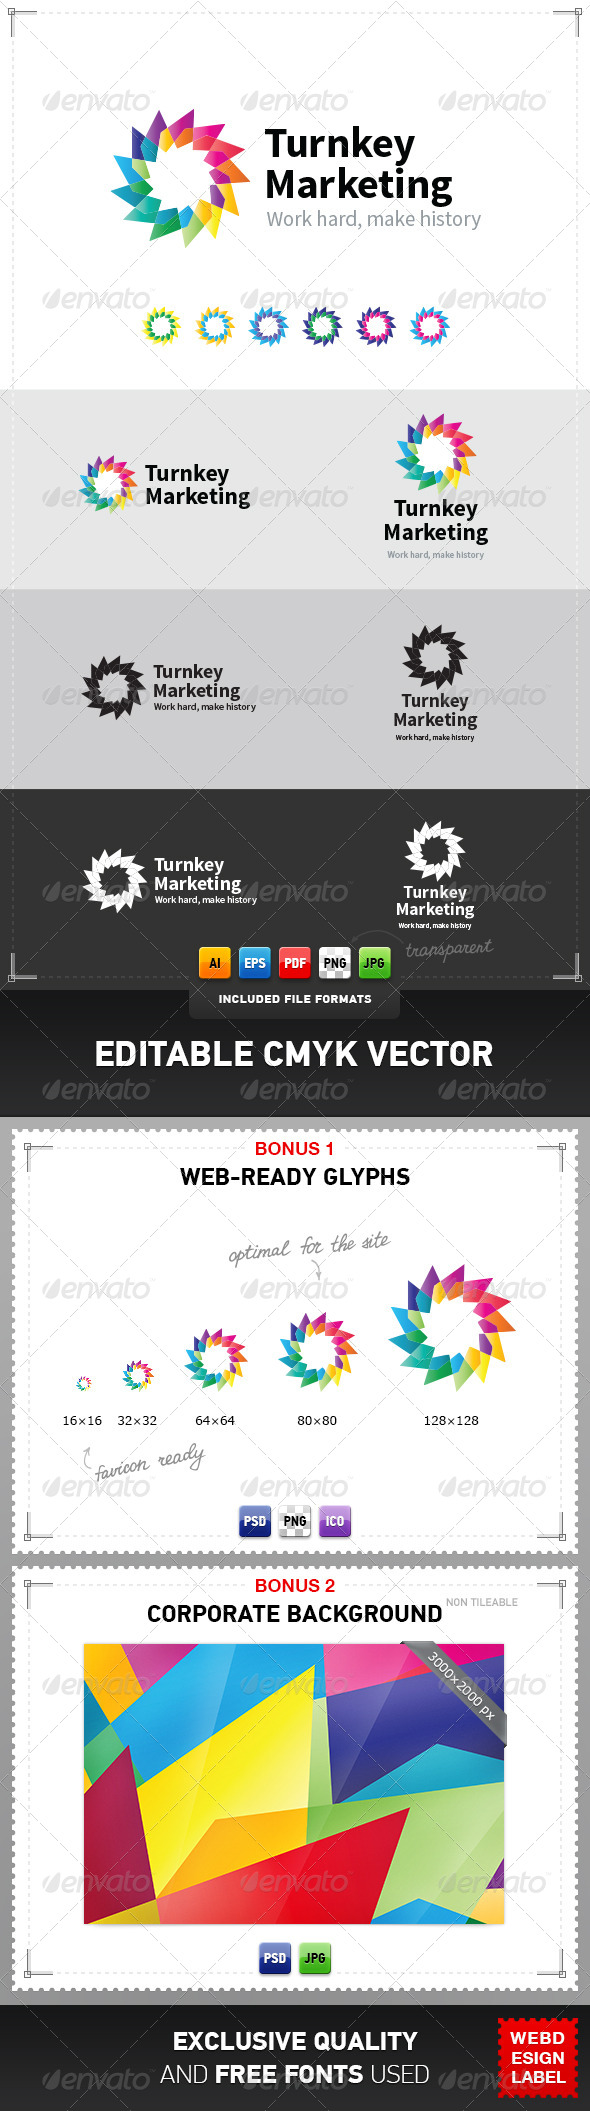 Turnkey Marketing Logo - Abstract Logo Templates